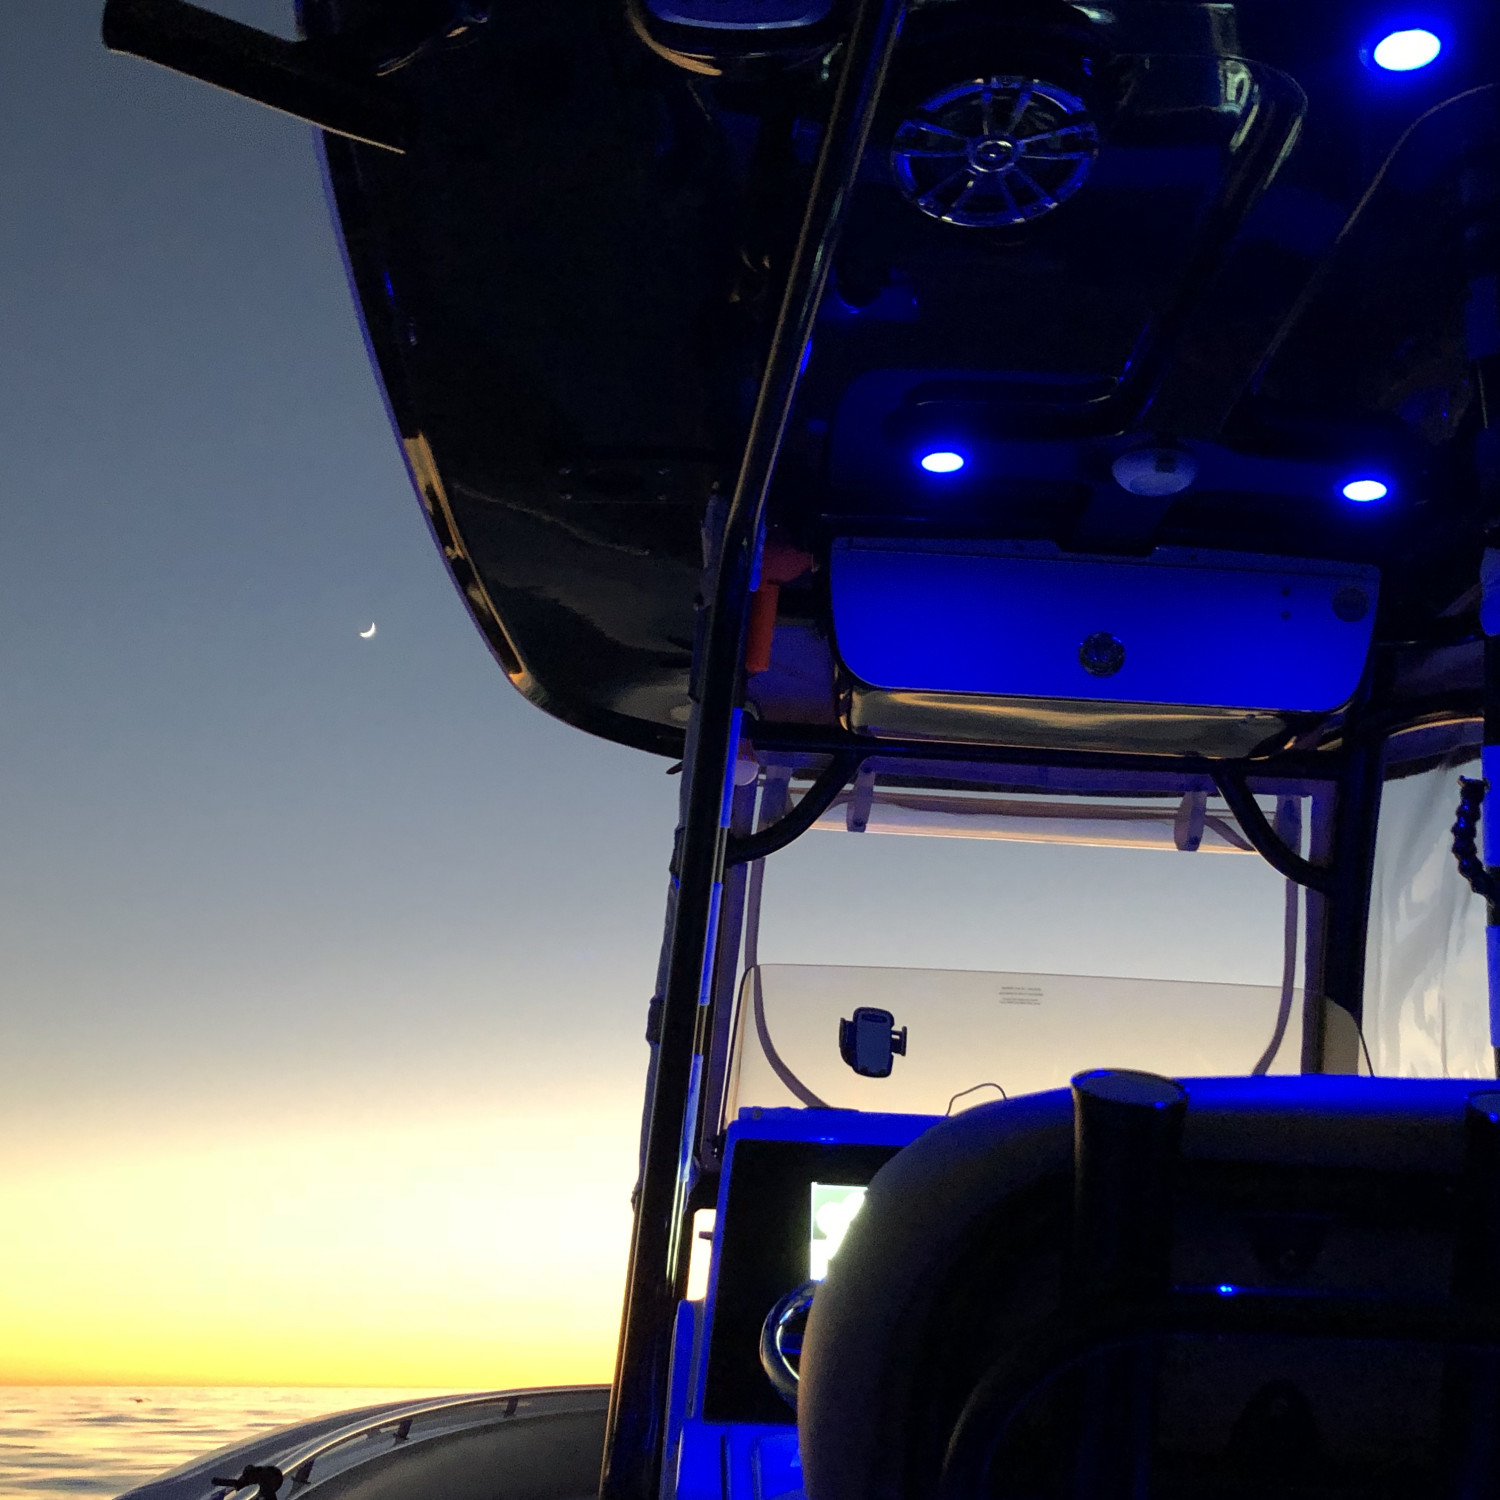 Title: Sportsman Sunset - On board their Sportsman Open 252 Center Console - Location: Hermosa Beach, California. Participating in the Photo Contest #SportsmanDecember2017